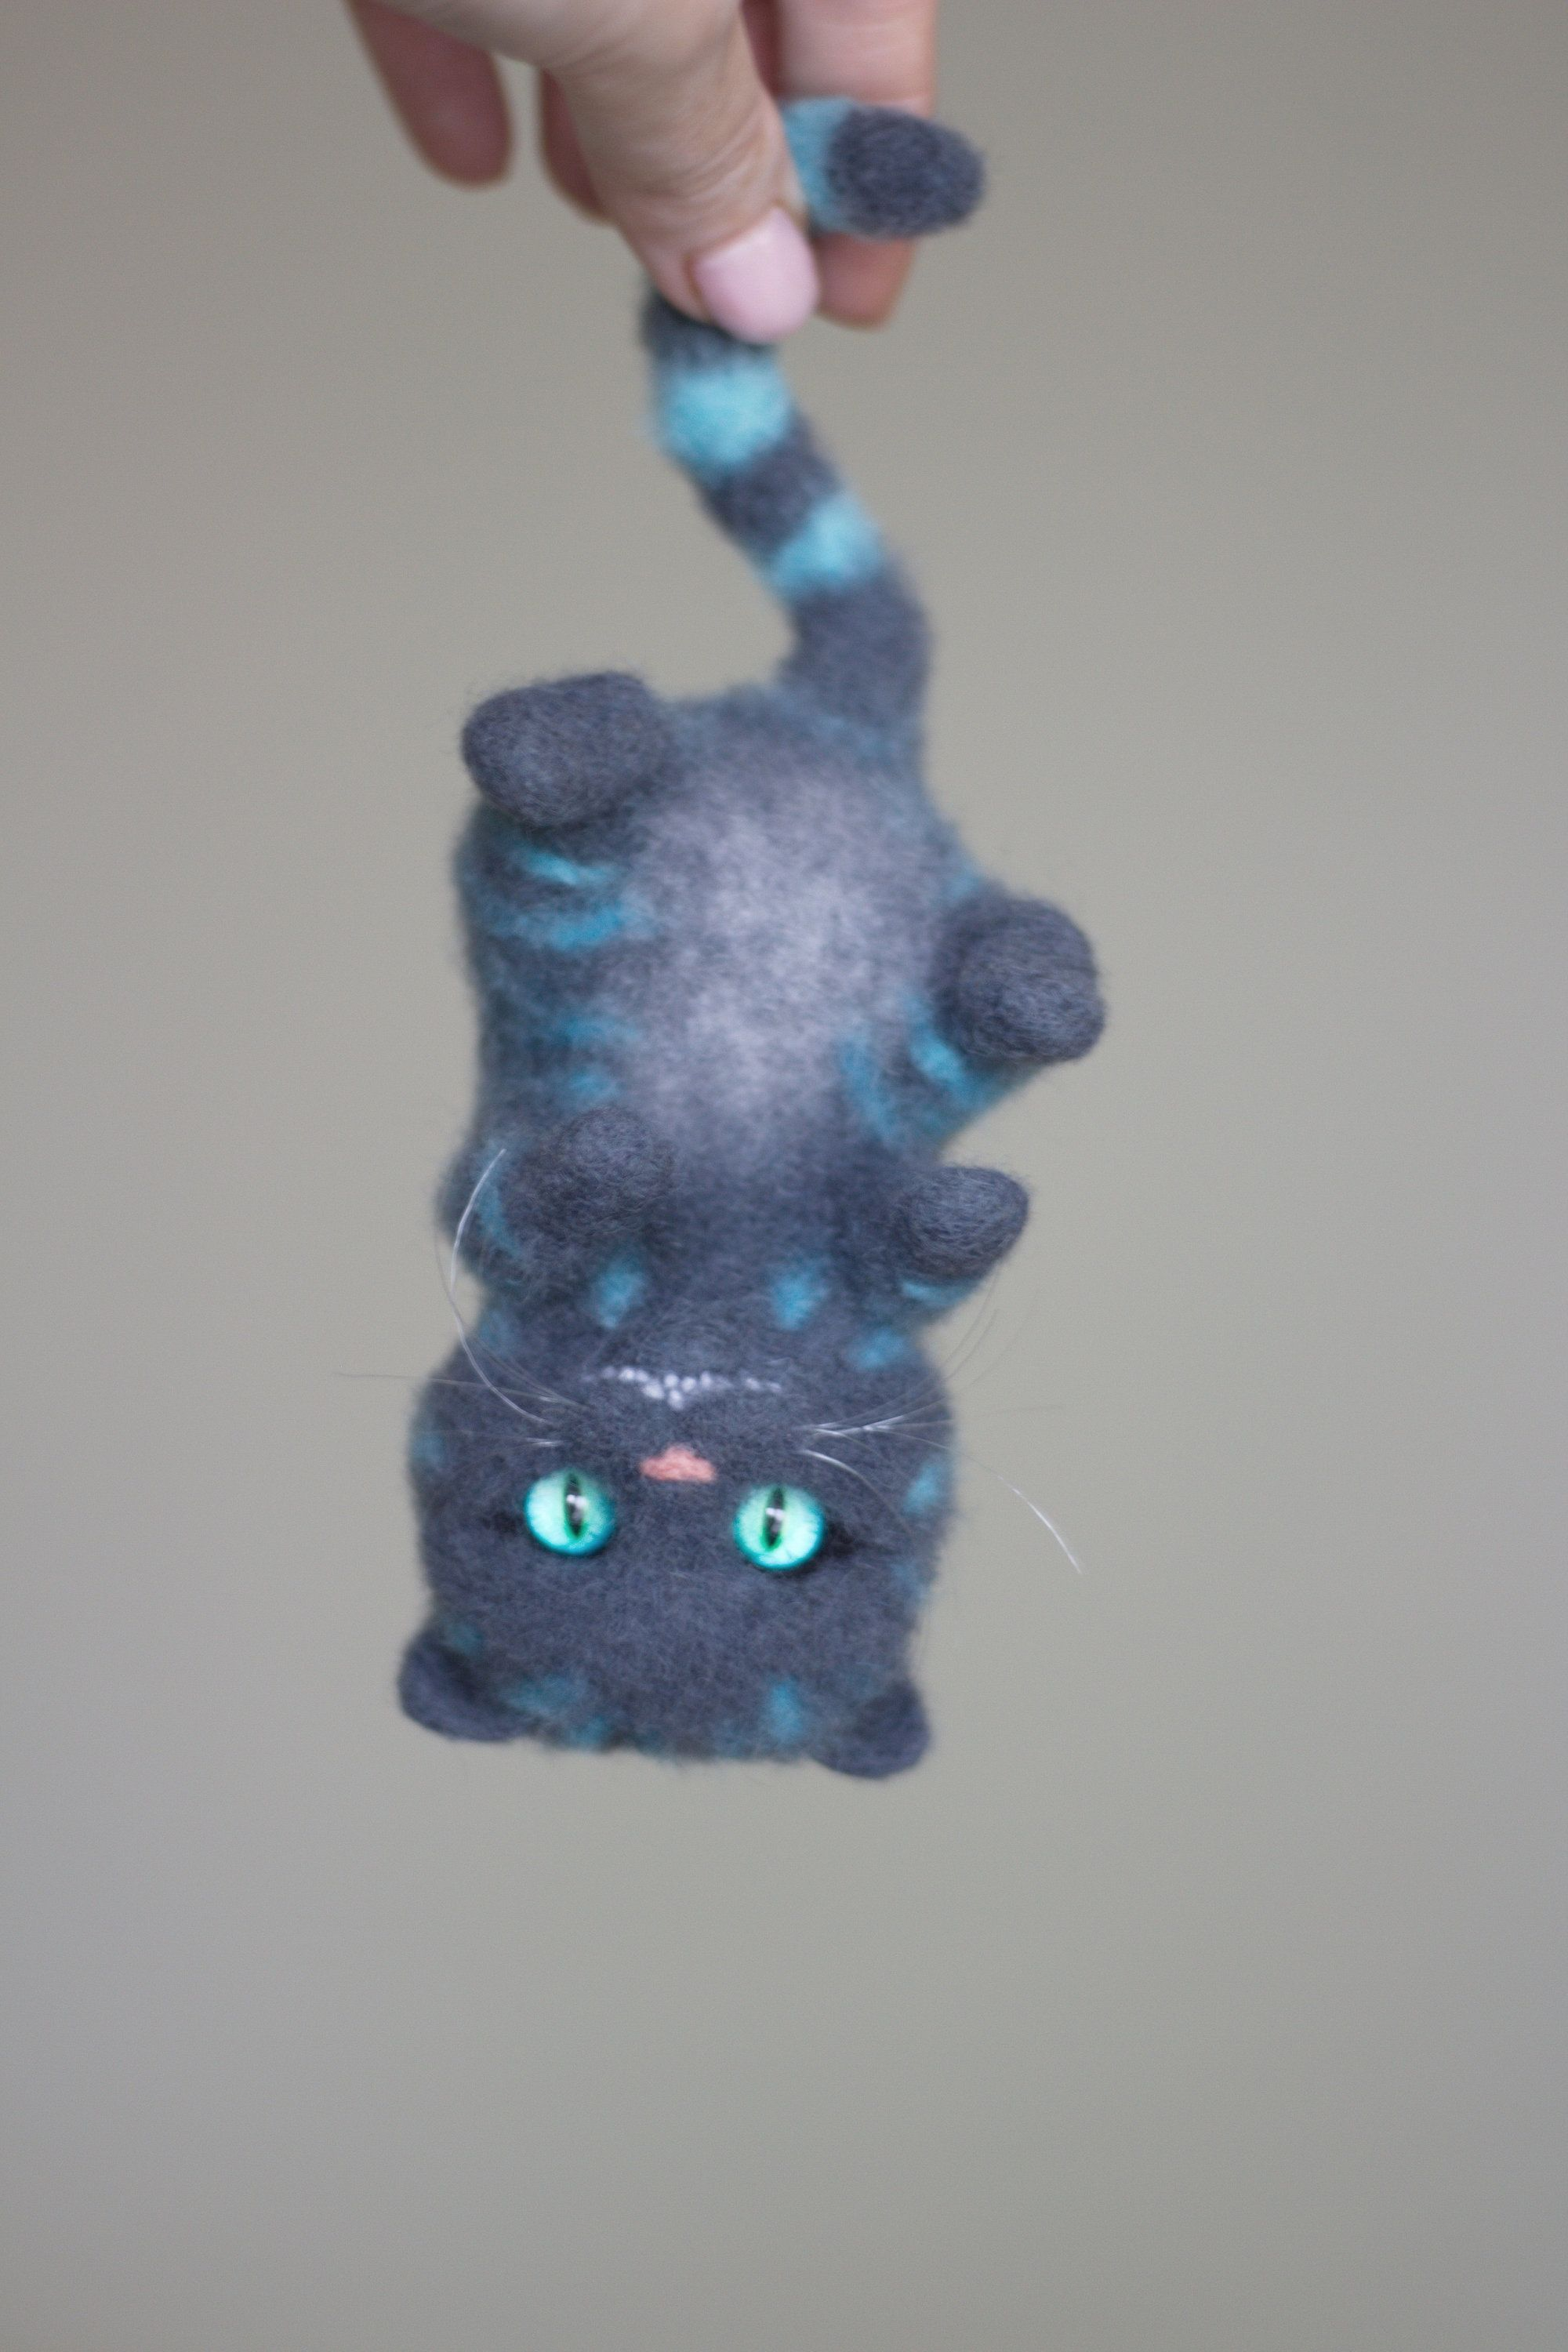 Made to order! Cheshire Cat toy needle felt Alice in Wonderland felted kitten cat sculpture needle felted animal wool Christmas gift #needlefeltedcat